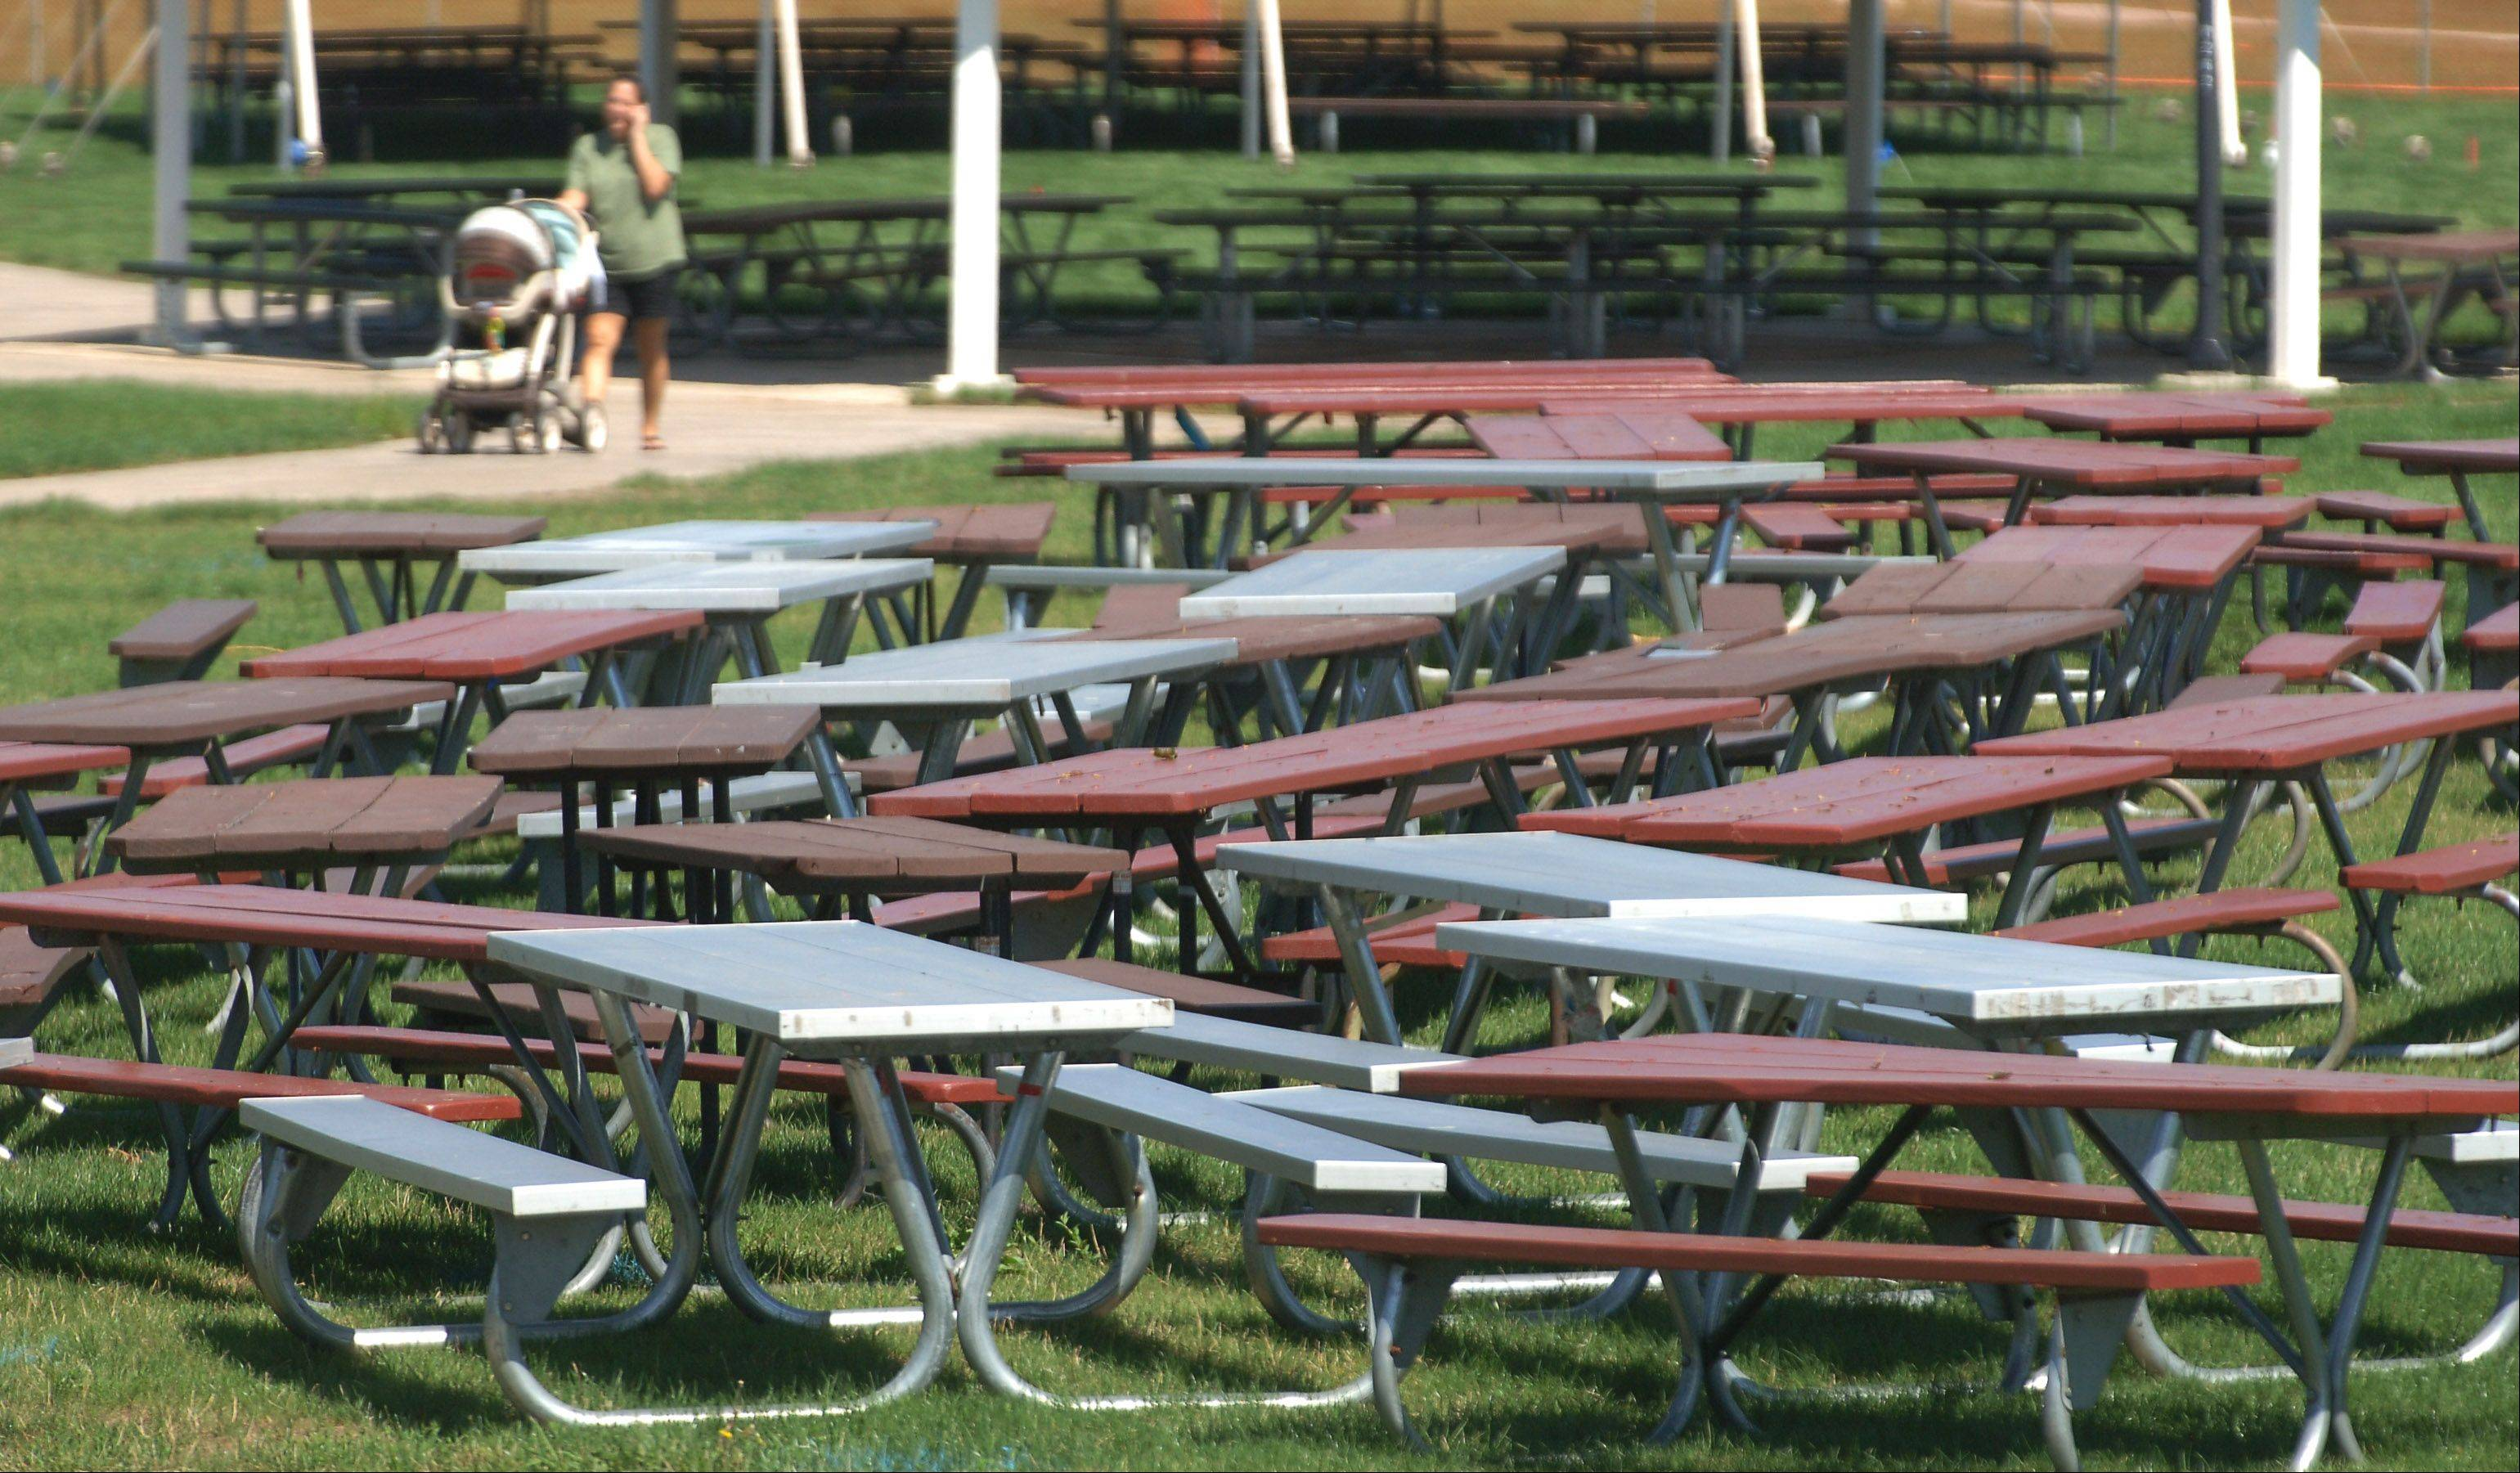 Picnic tables are ready to be placed and crews began setting up tents Tuesday in preparation for the Little Bear Ribfest at Century Park in Vernon Hills. The fest takes place Friday evening and Saturday with food and live musical performances.